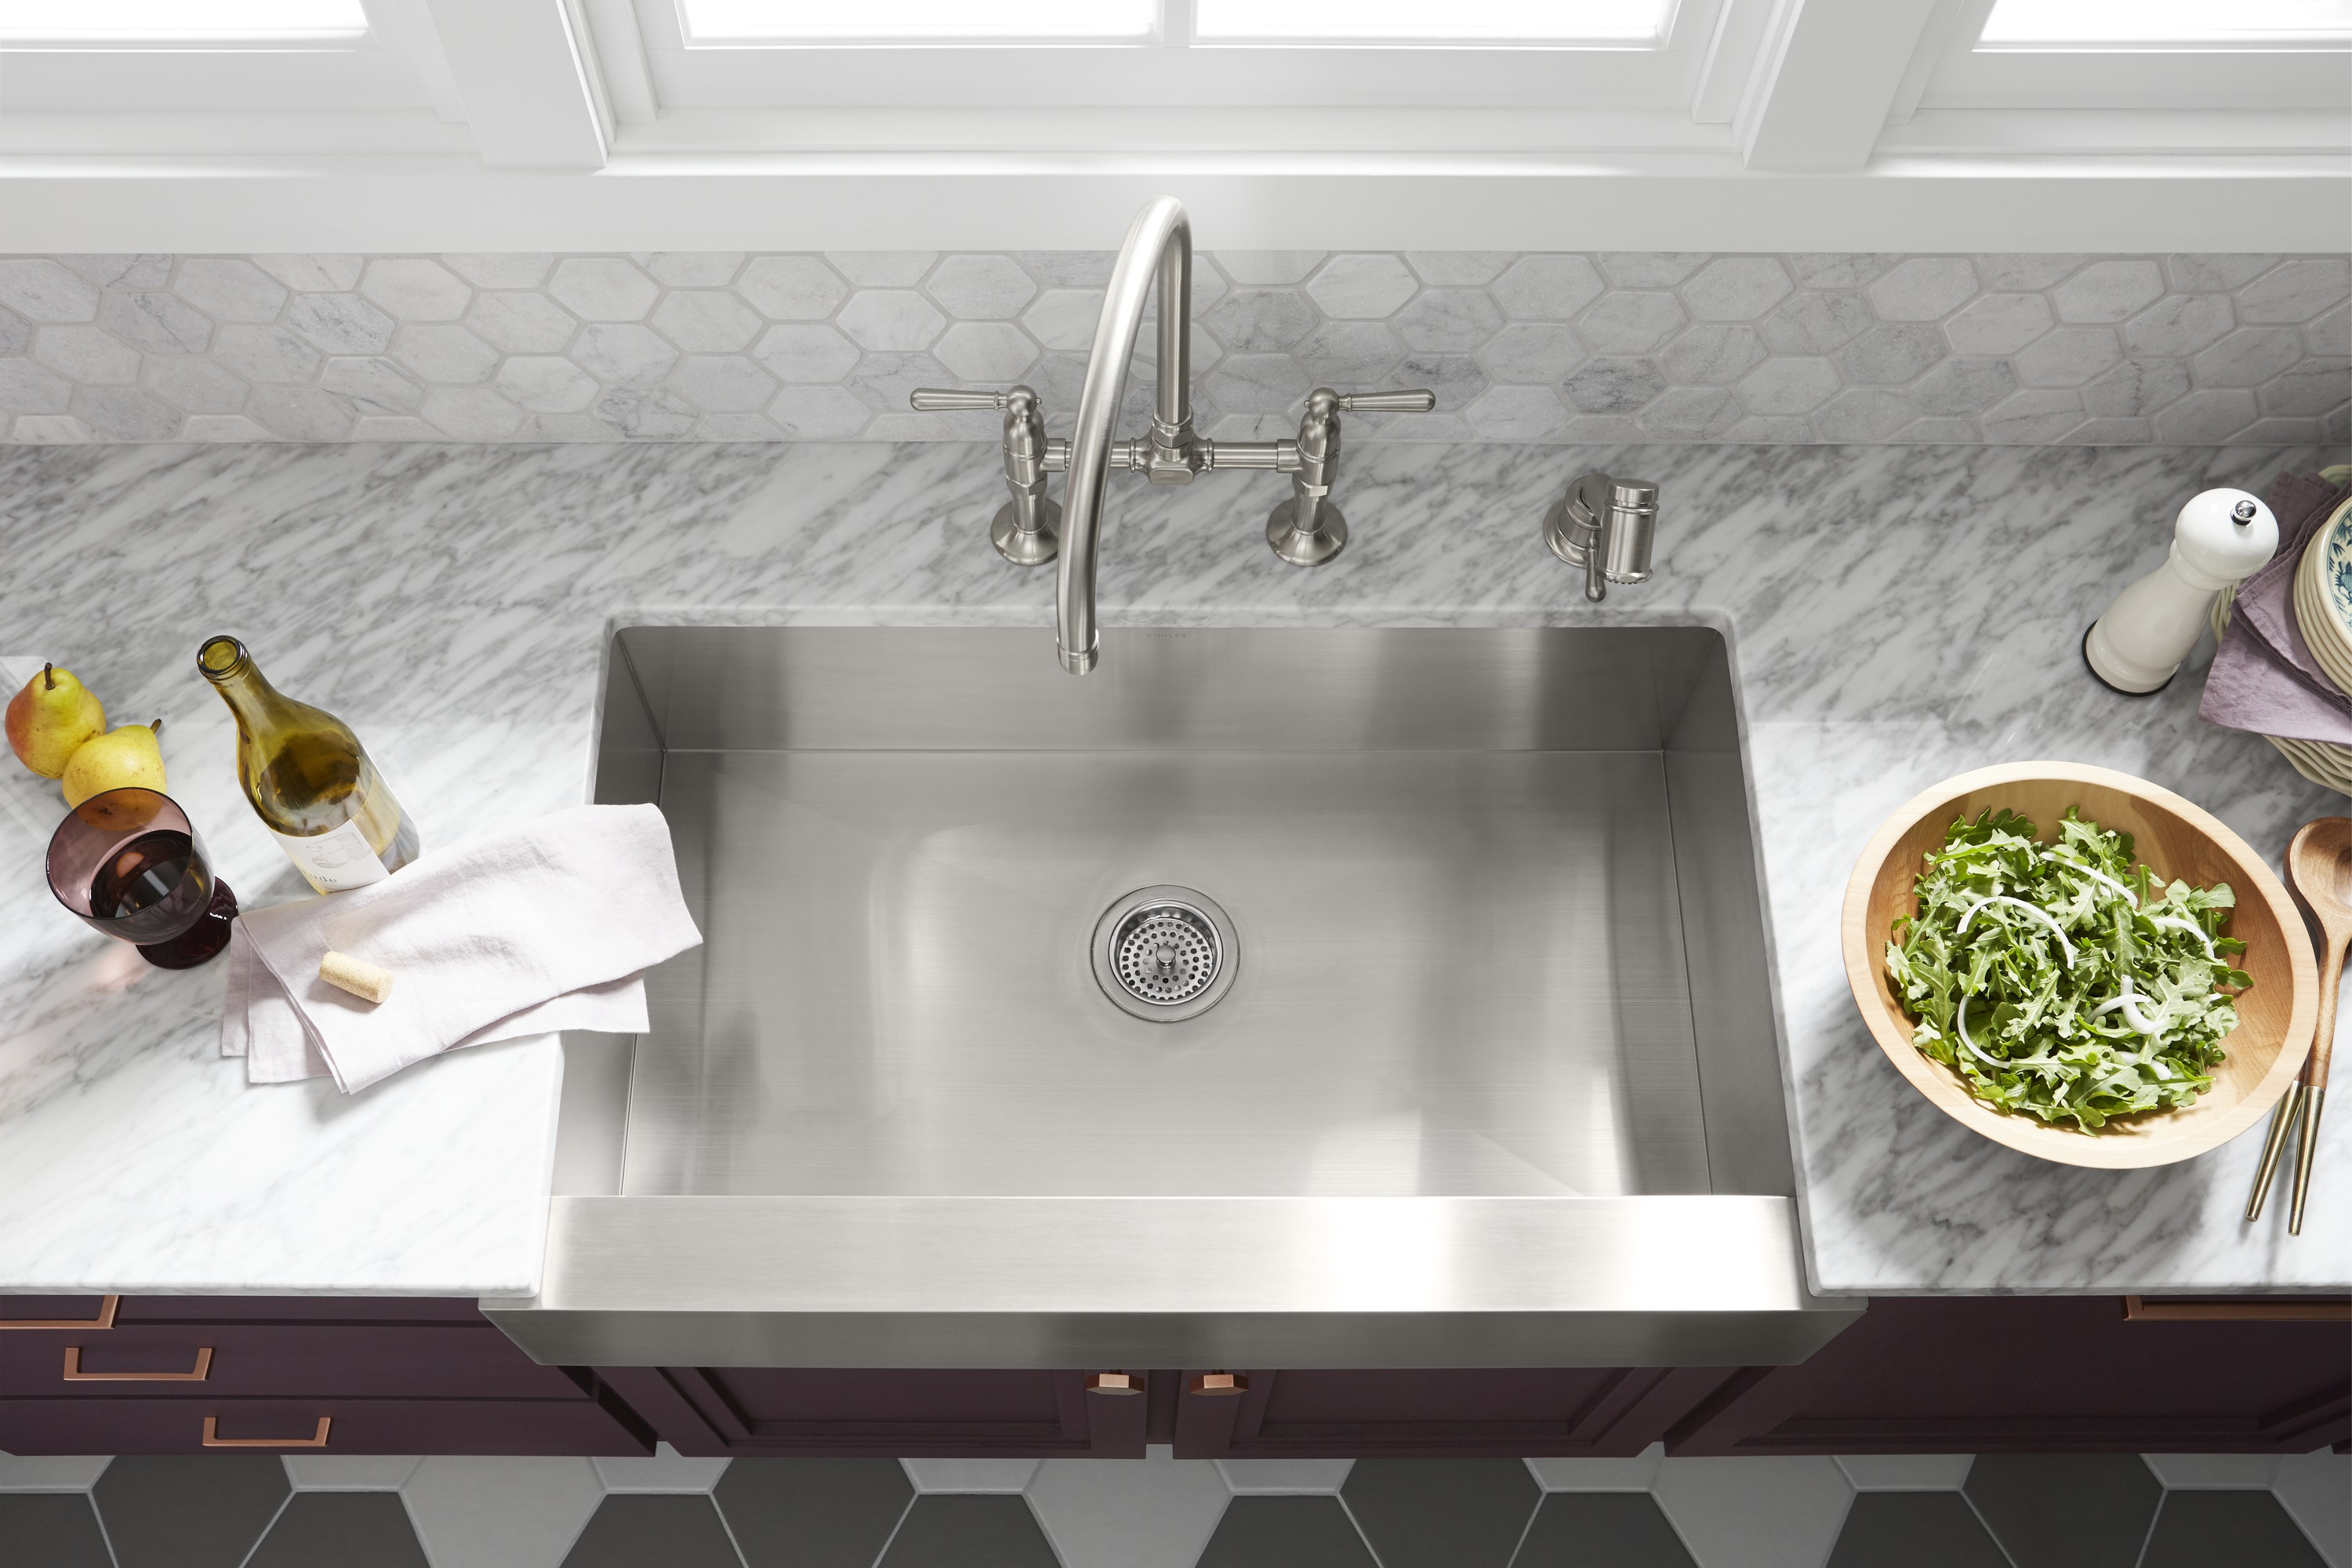 HiRise™ bridge kitchen faucet     Vault™ under-mount apron-front kitchen sink     A single-basin sink features tightly angled corners to maximize workspace.